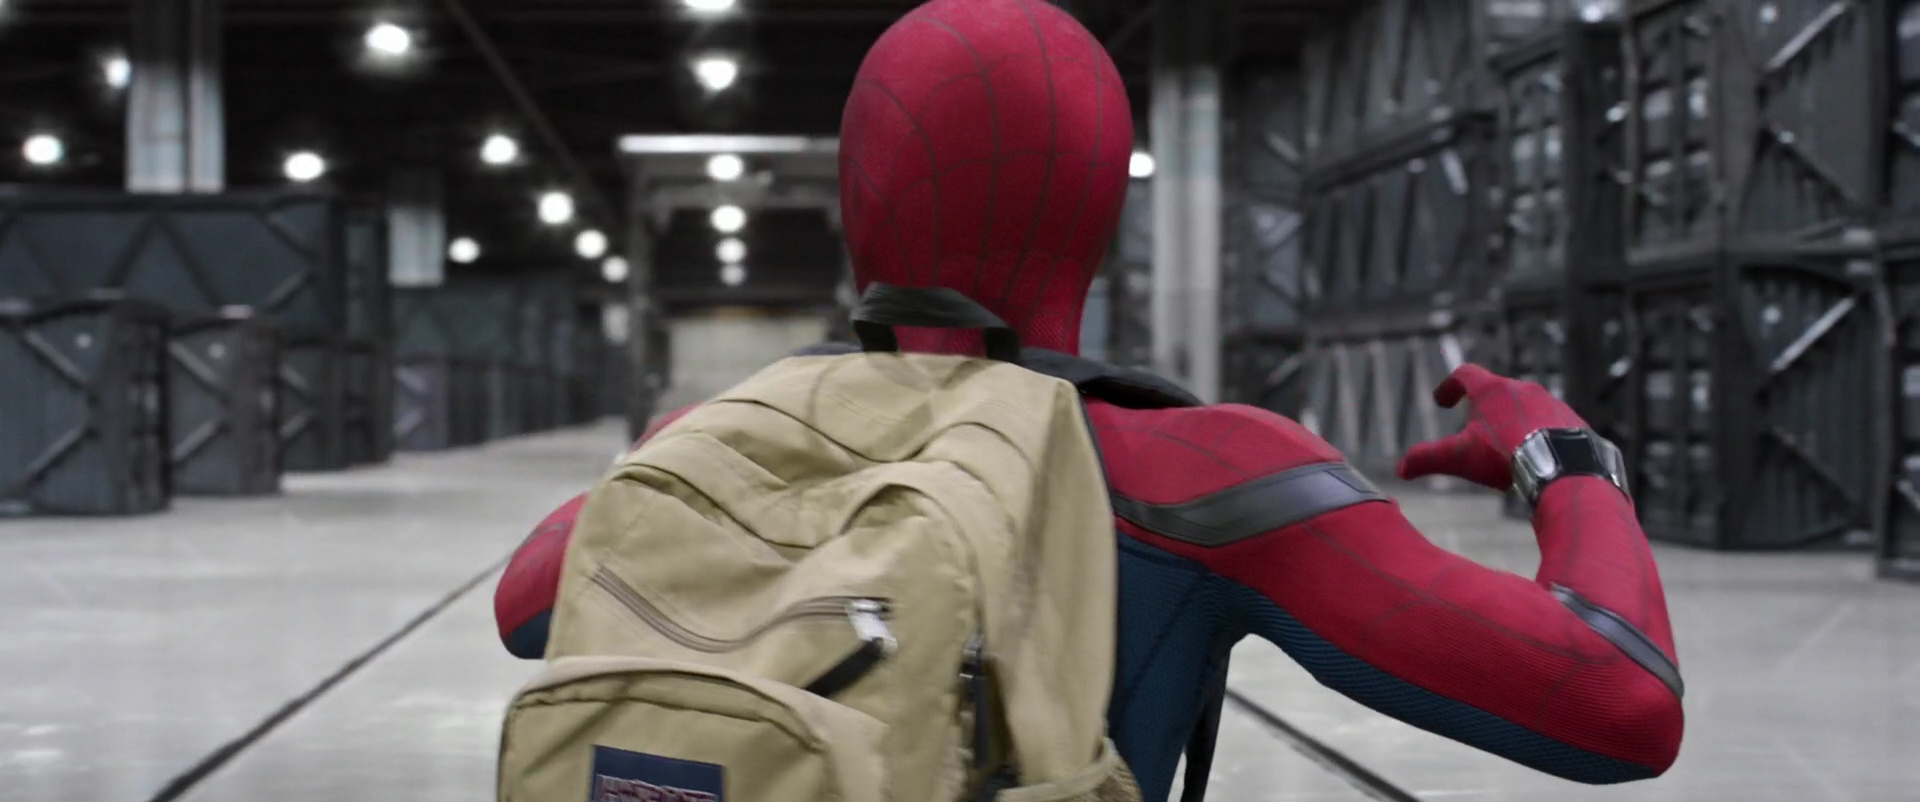 Intern or Spider-Man? They're More Similar Than You Think